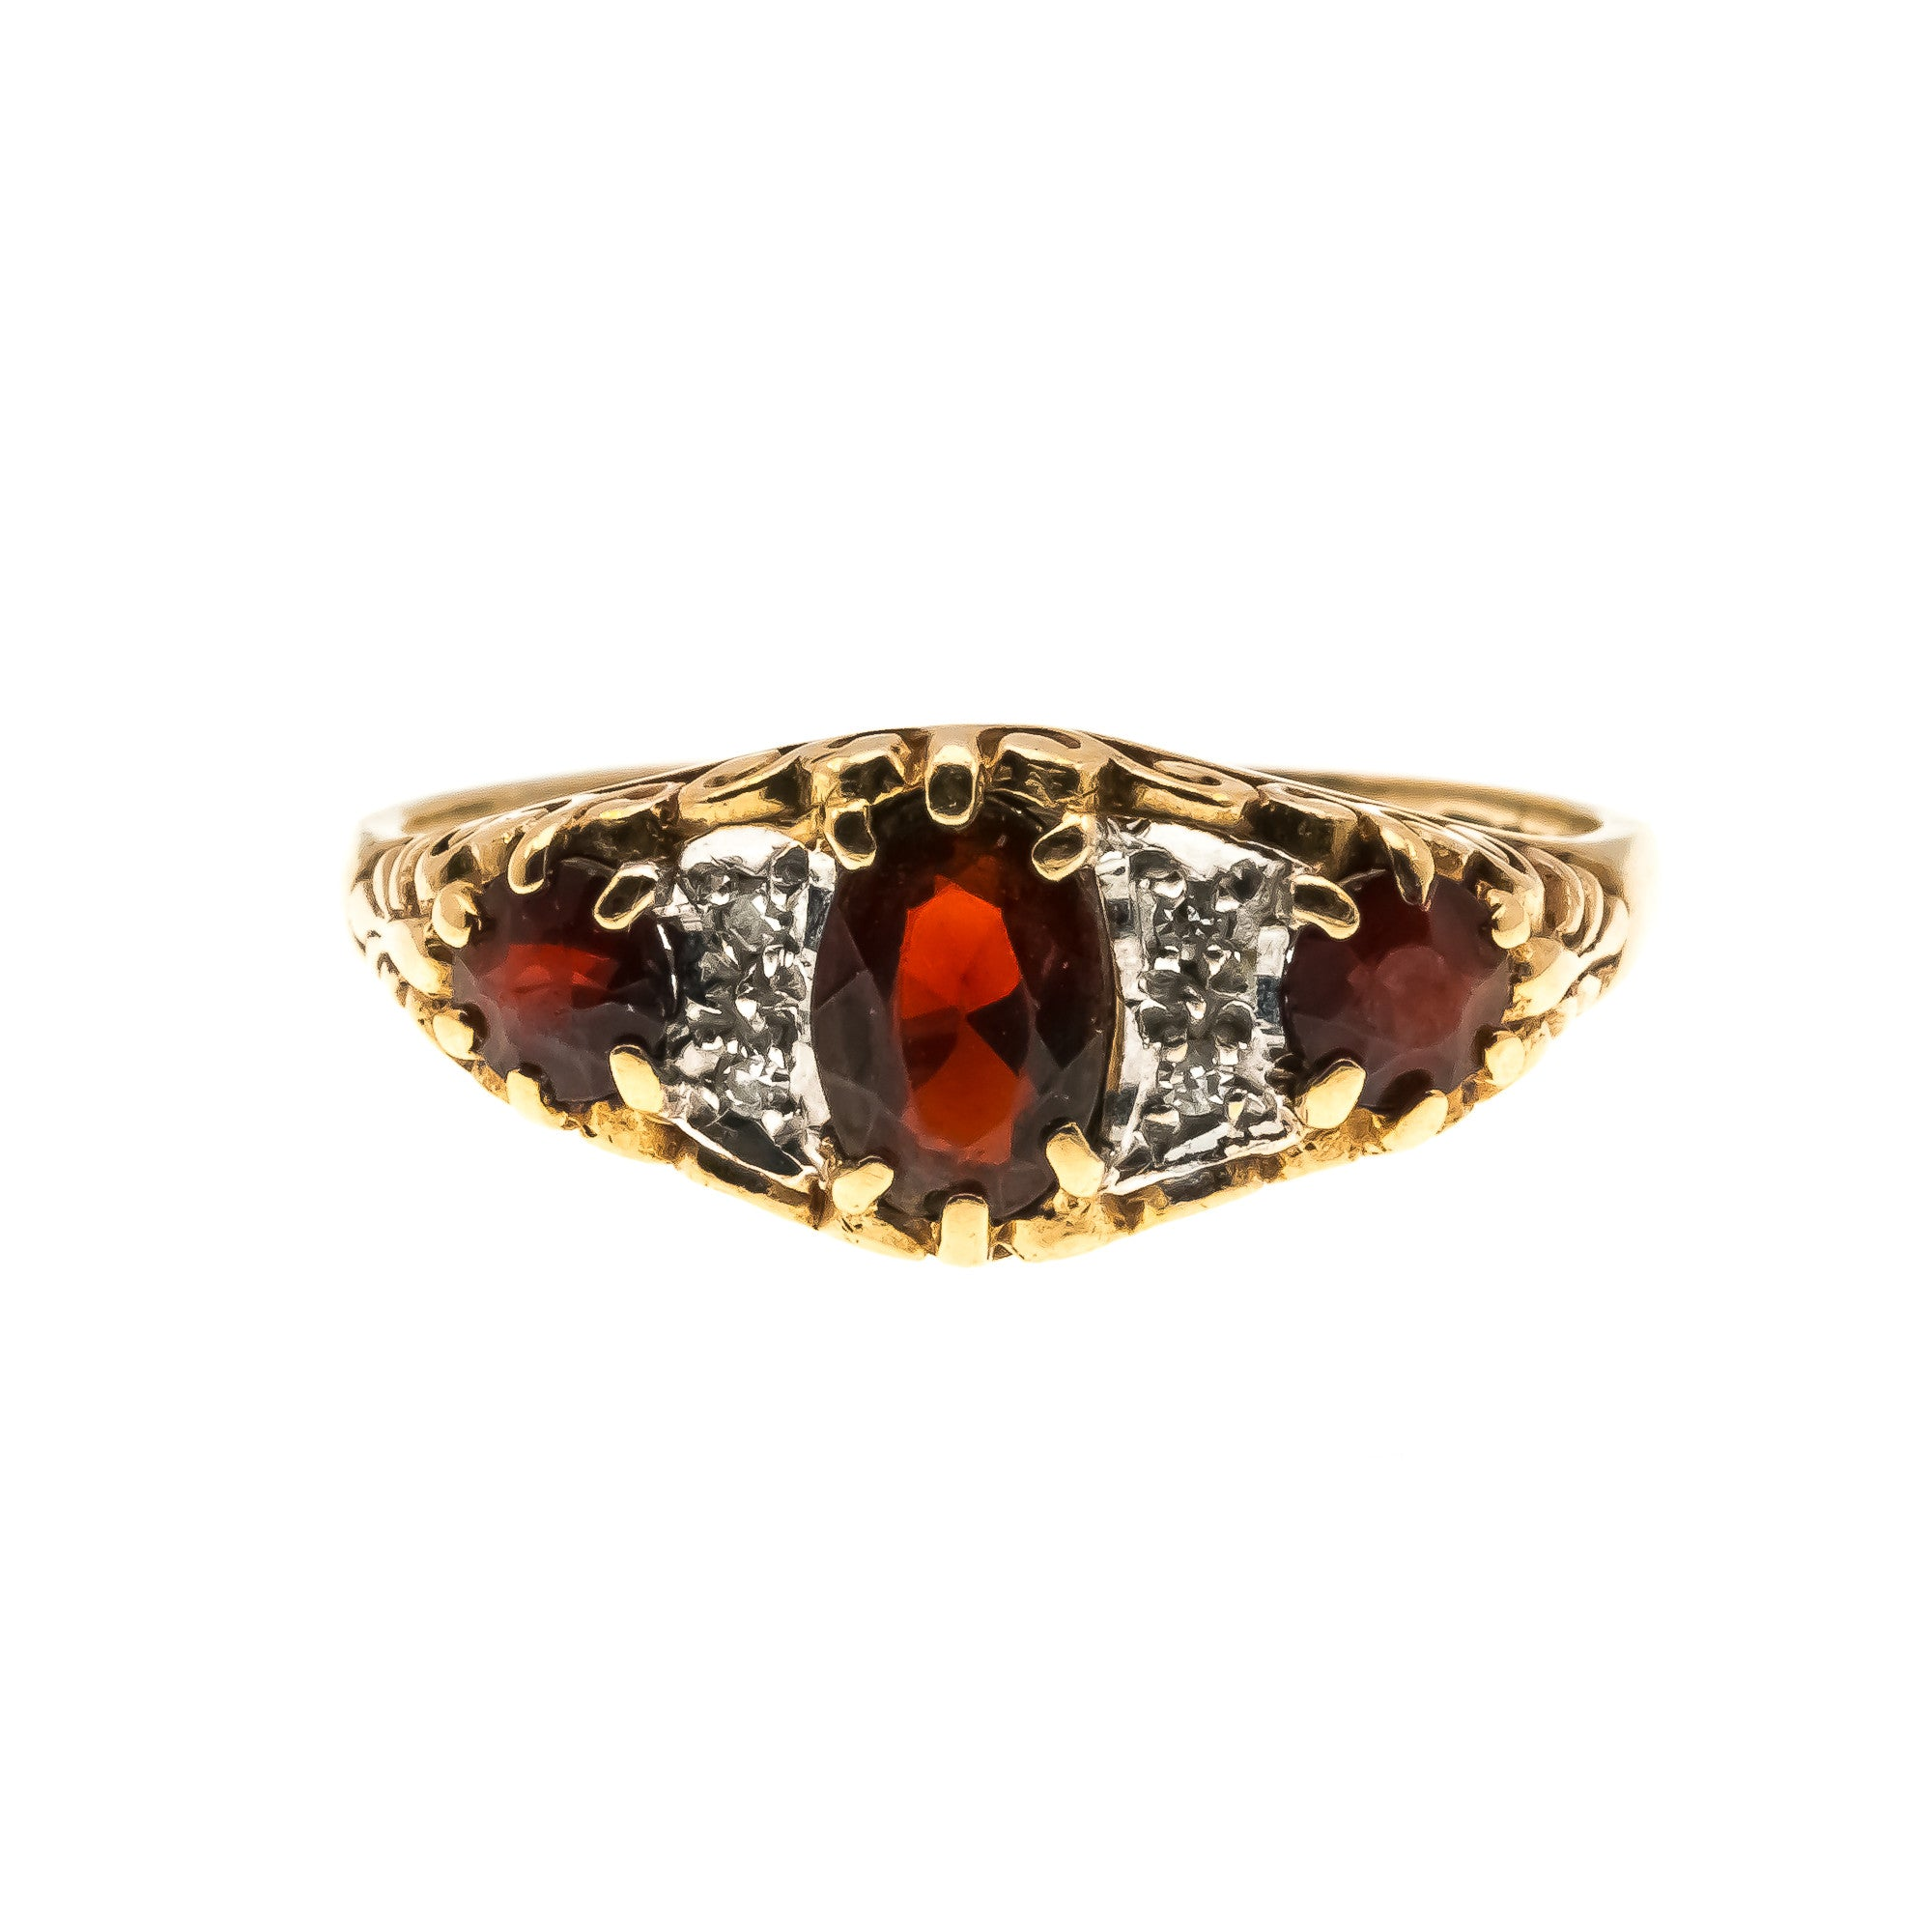 Trio Of Kisses - Vintage 9K Garnet & Diamond Ring